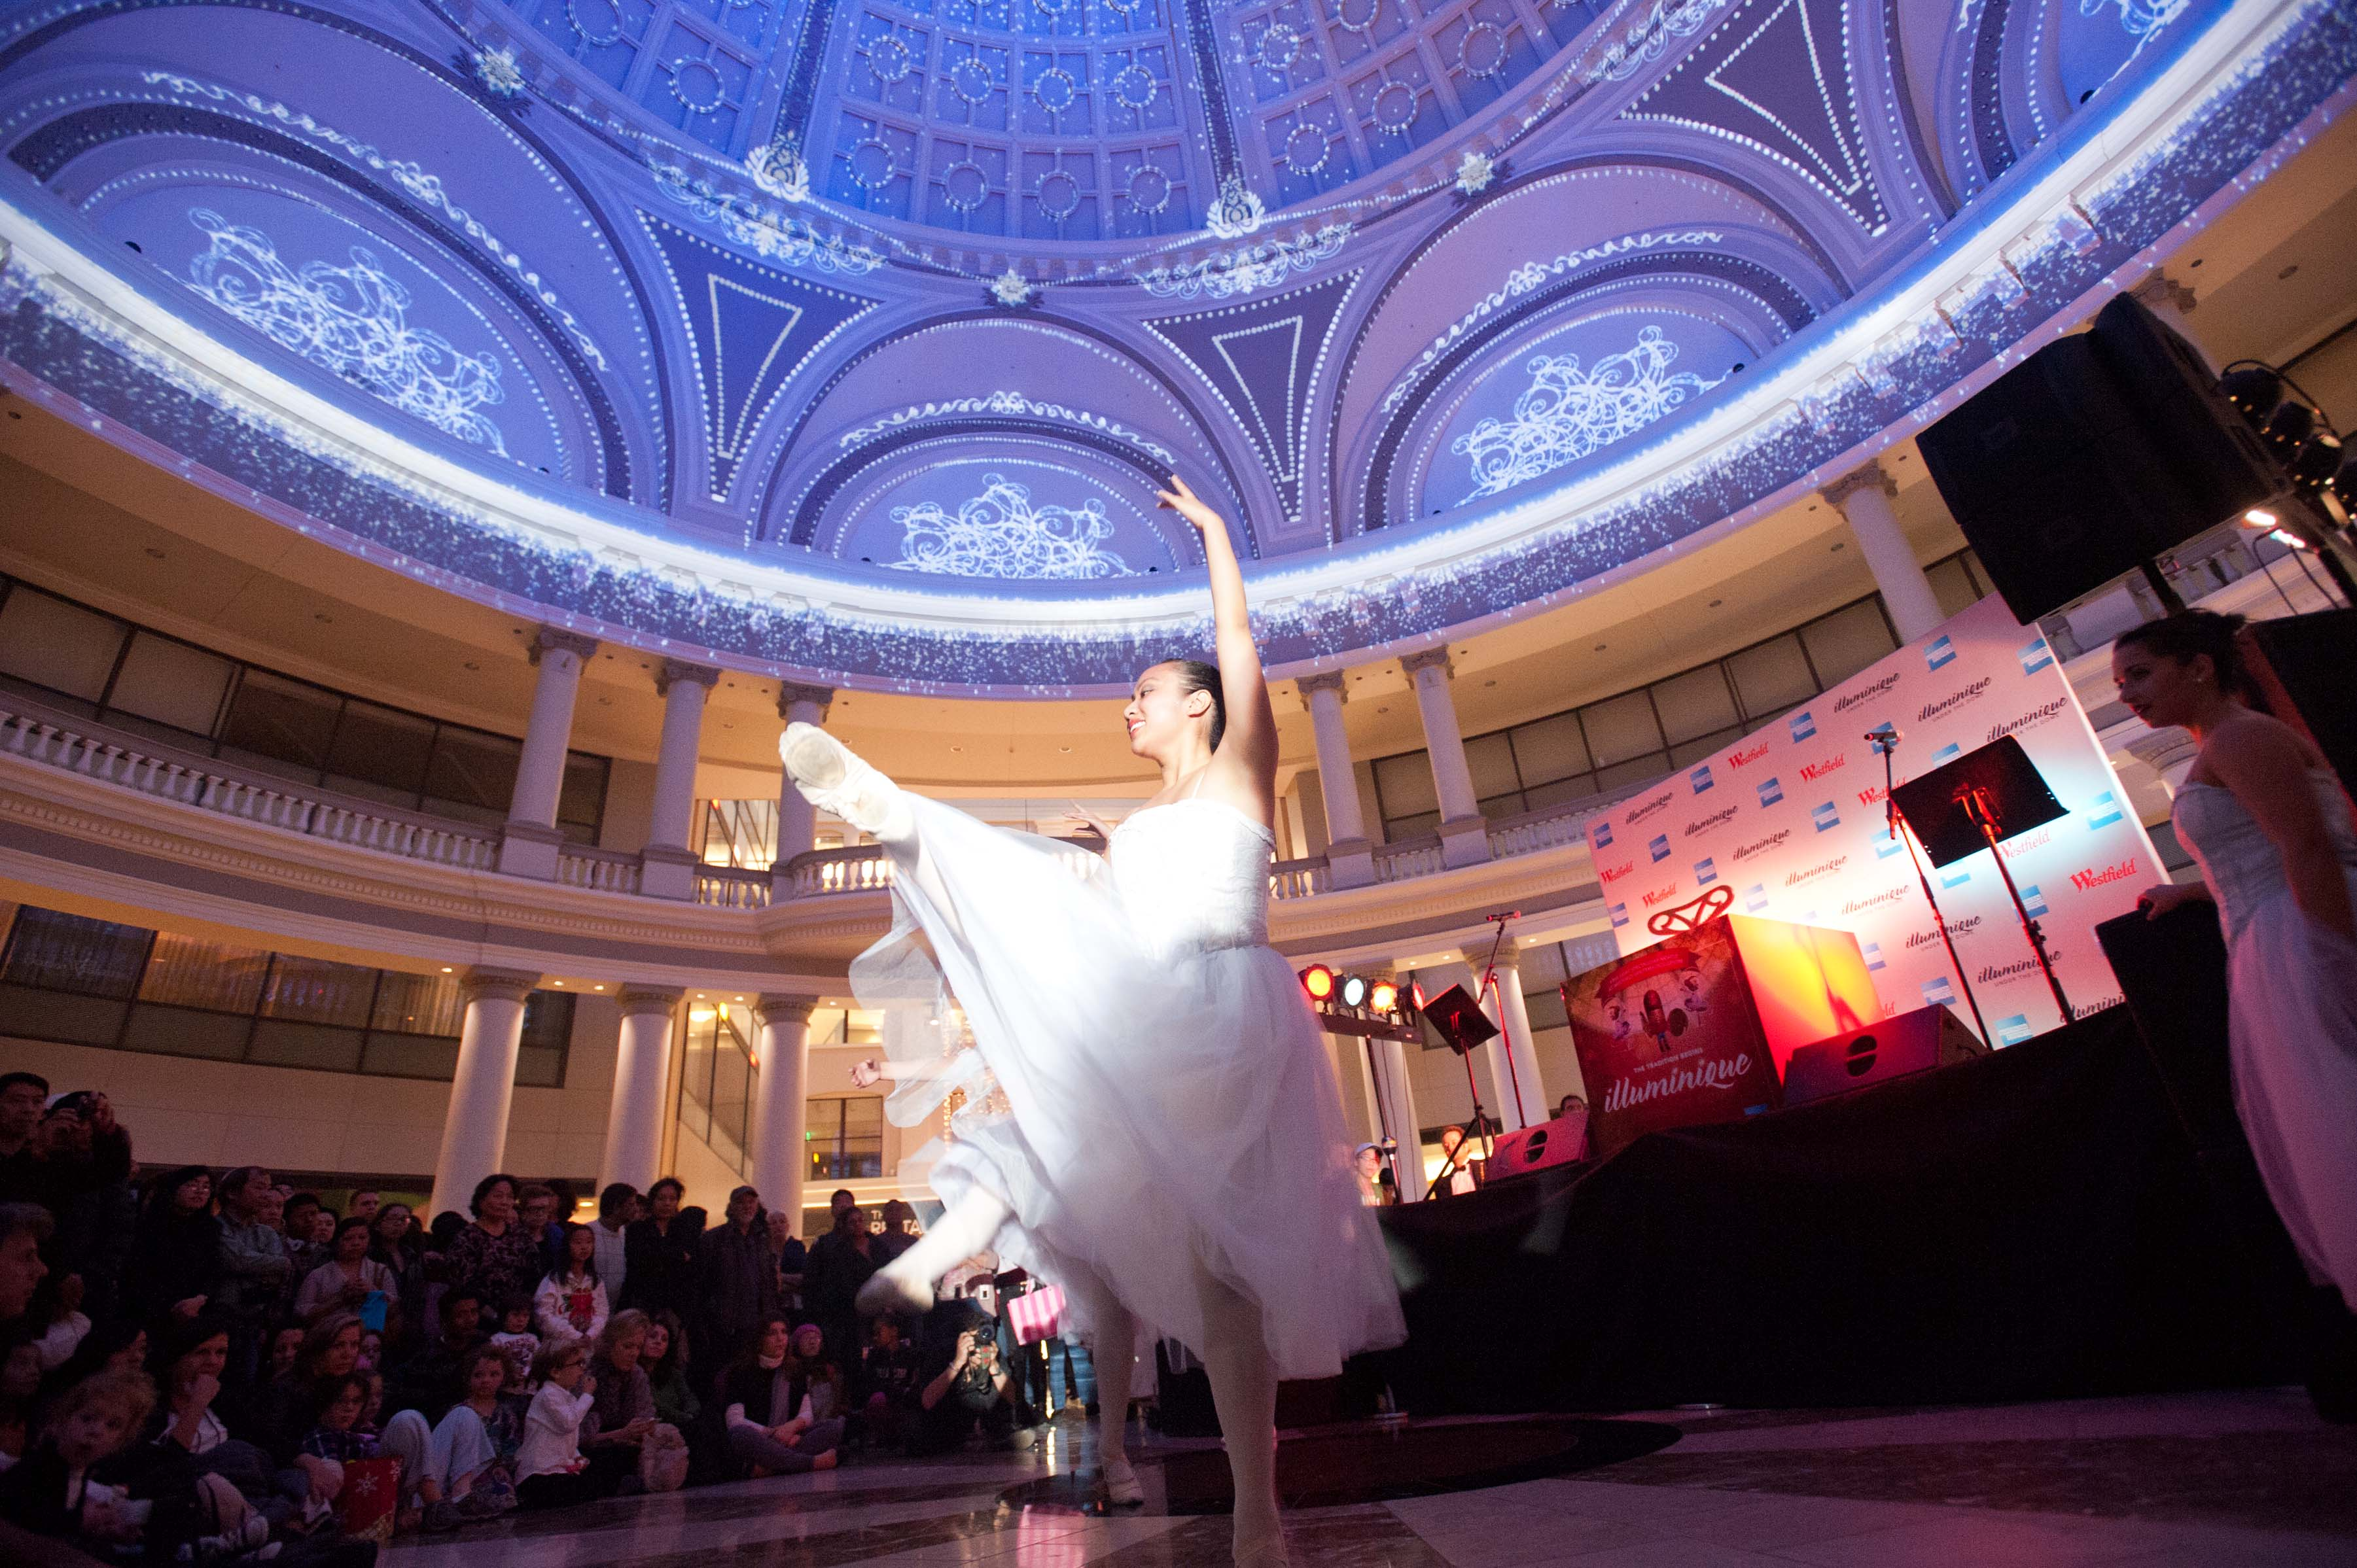 Ballerina and dome (1)